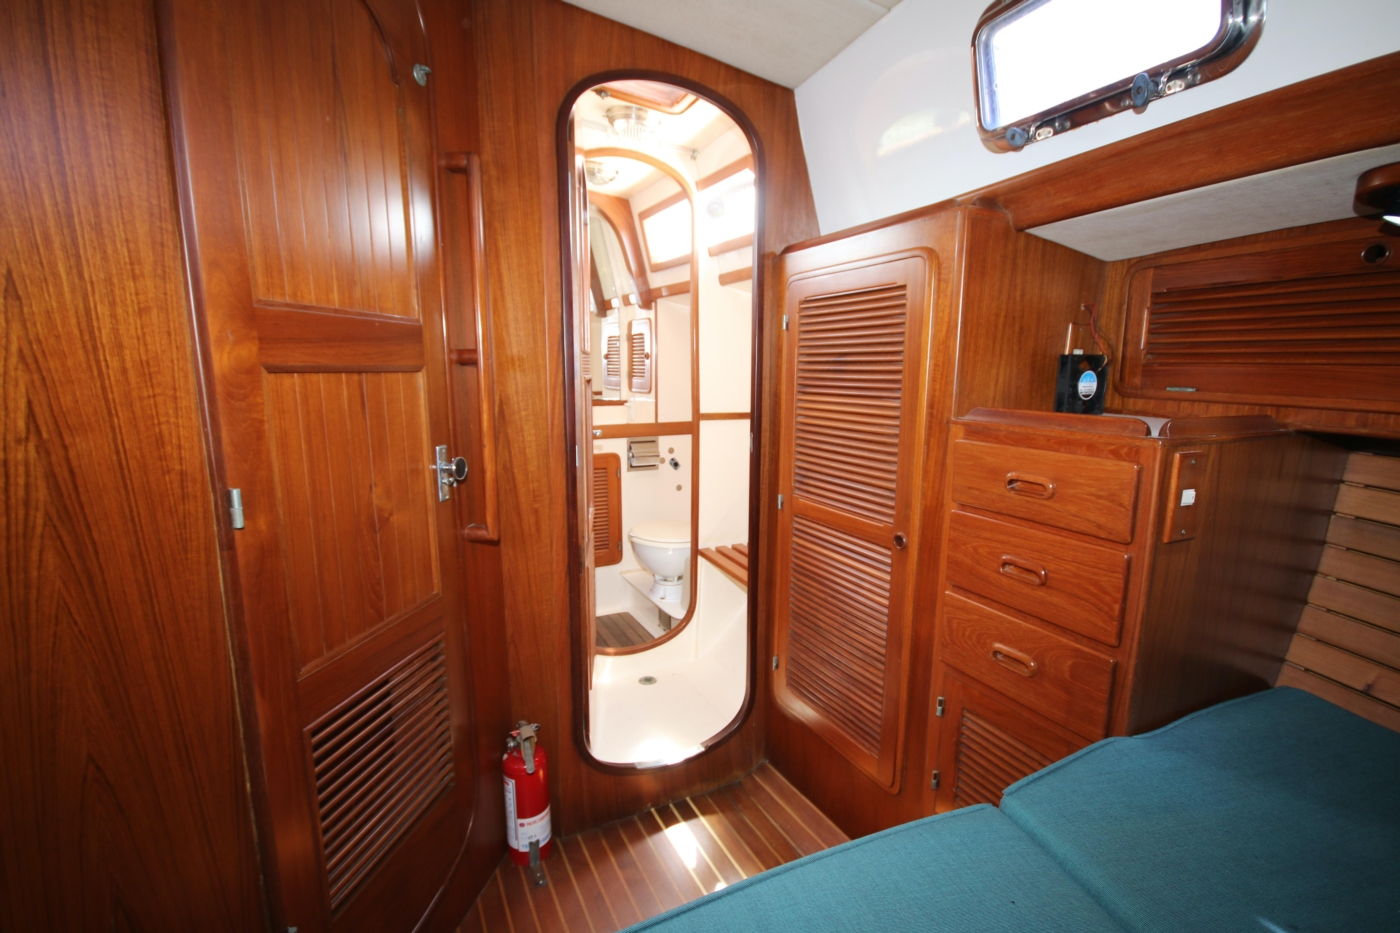 1996 Tanton 45 Offshore, Aft queen access to head